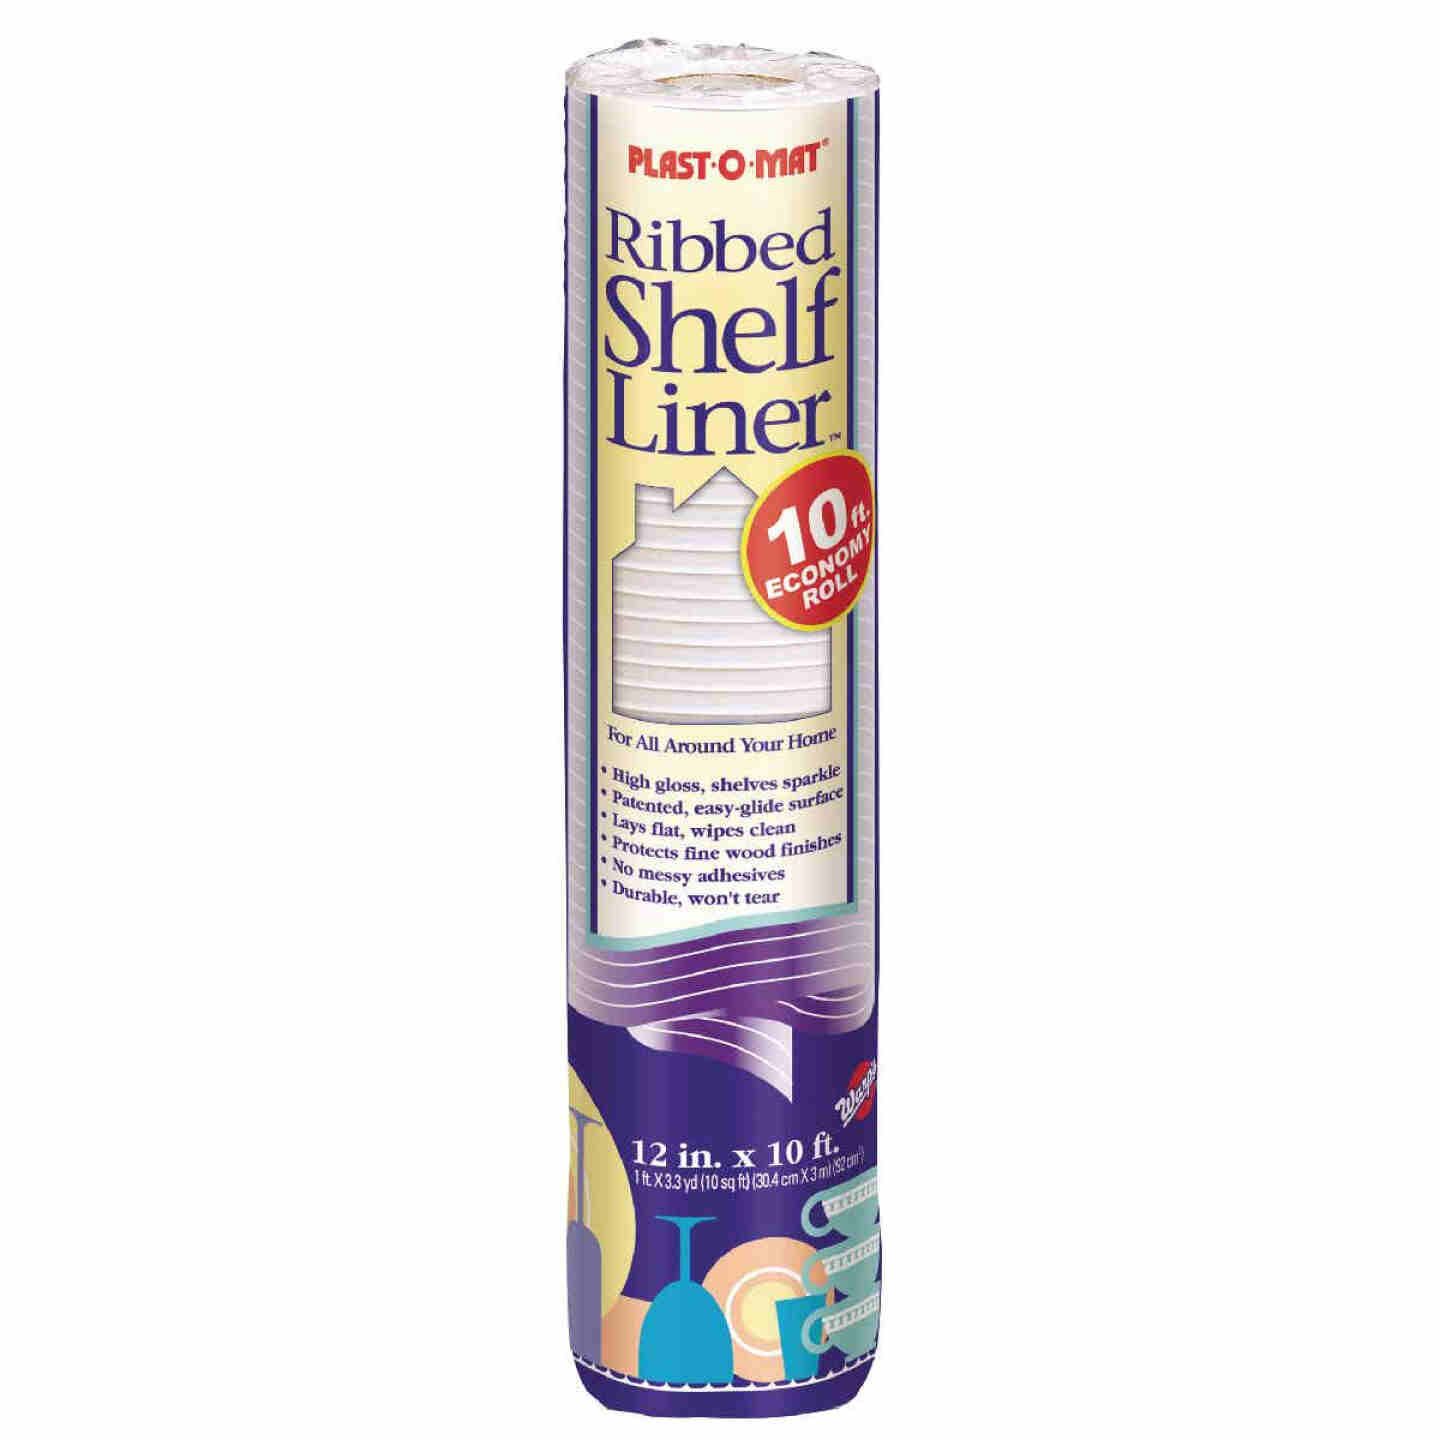 Plast-O-Mat 12 In. x 10 Ft. Clear Ribbed Non-Adhesive Shelf Liner Image 1